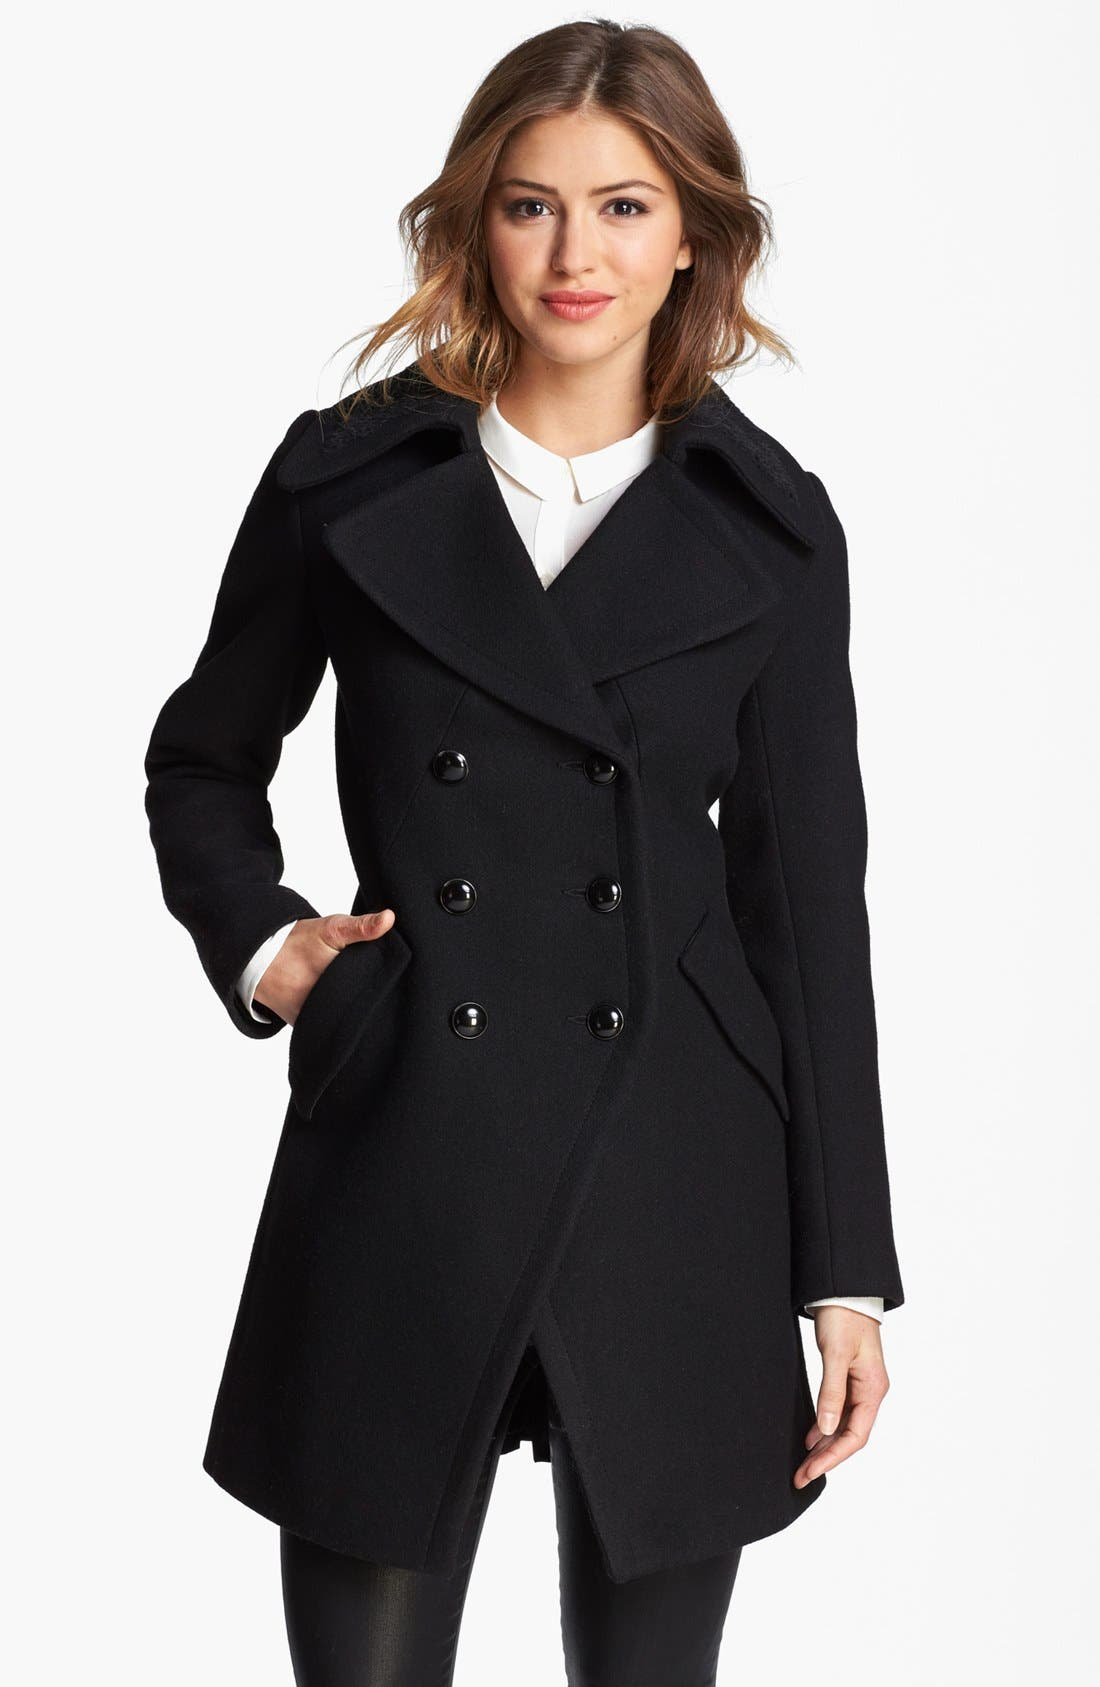 Alternate Image 1 Selected - Trina Turk Double Breasted Officer's Coat (Petite)